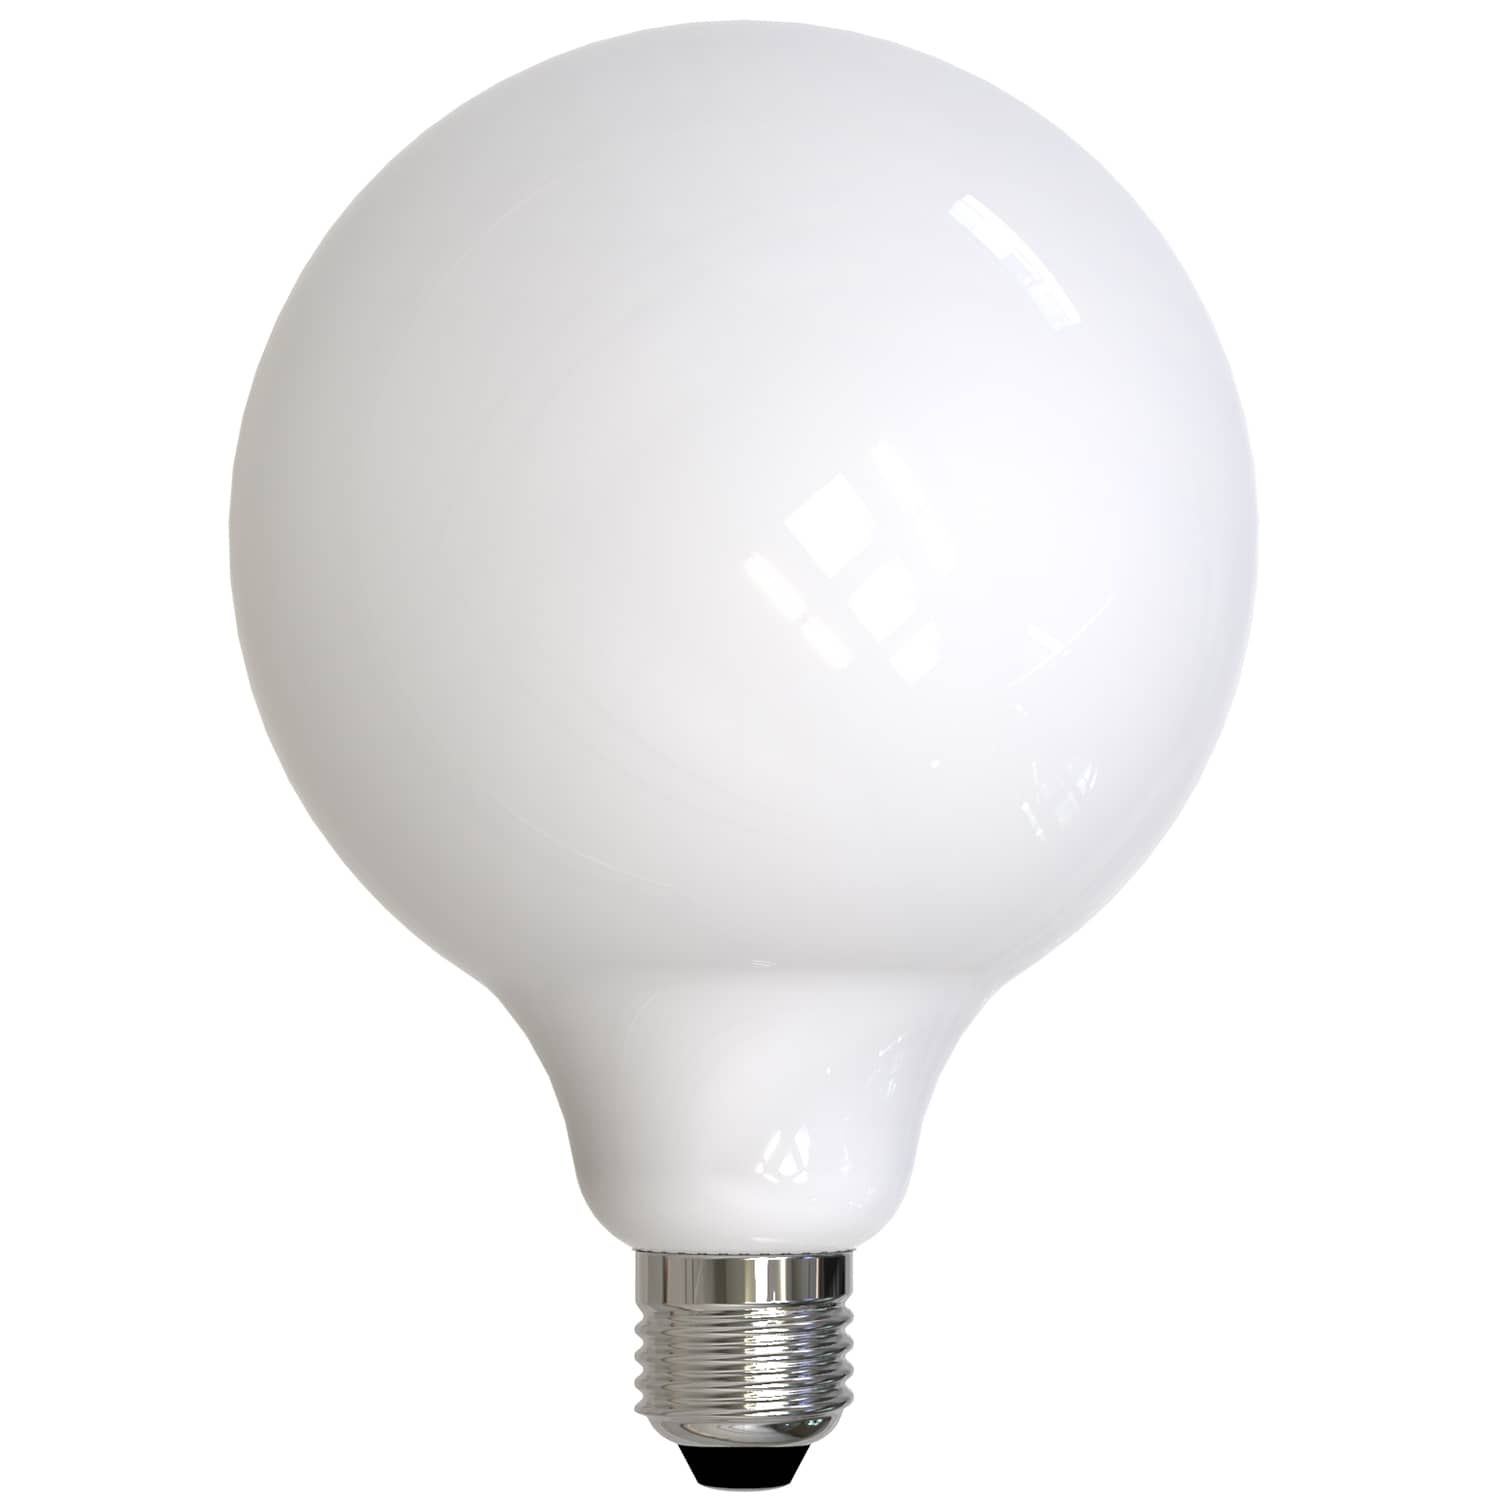 Xl Led Globe Bulb G40 Globe Bulb Globe Light Bulbs Led Globe Lights